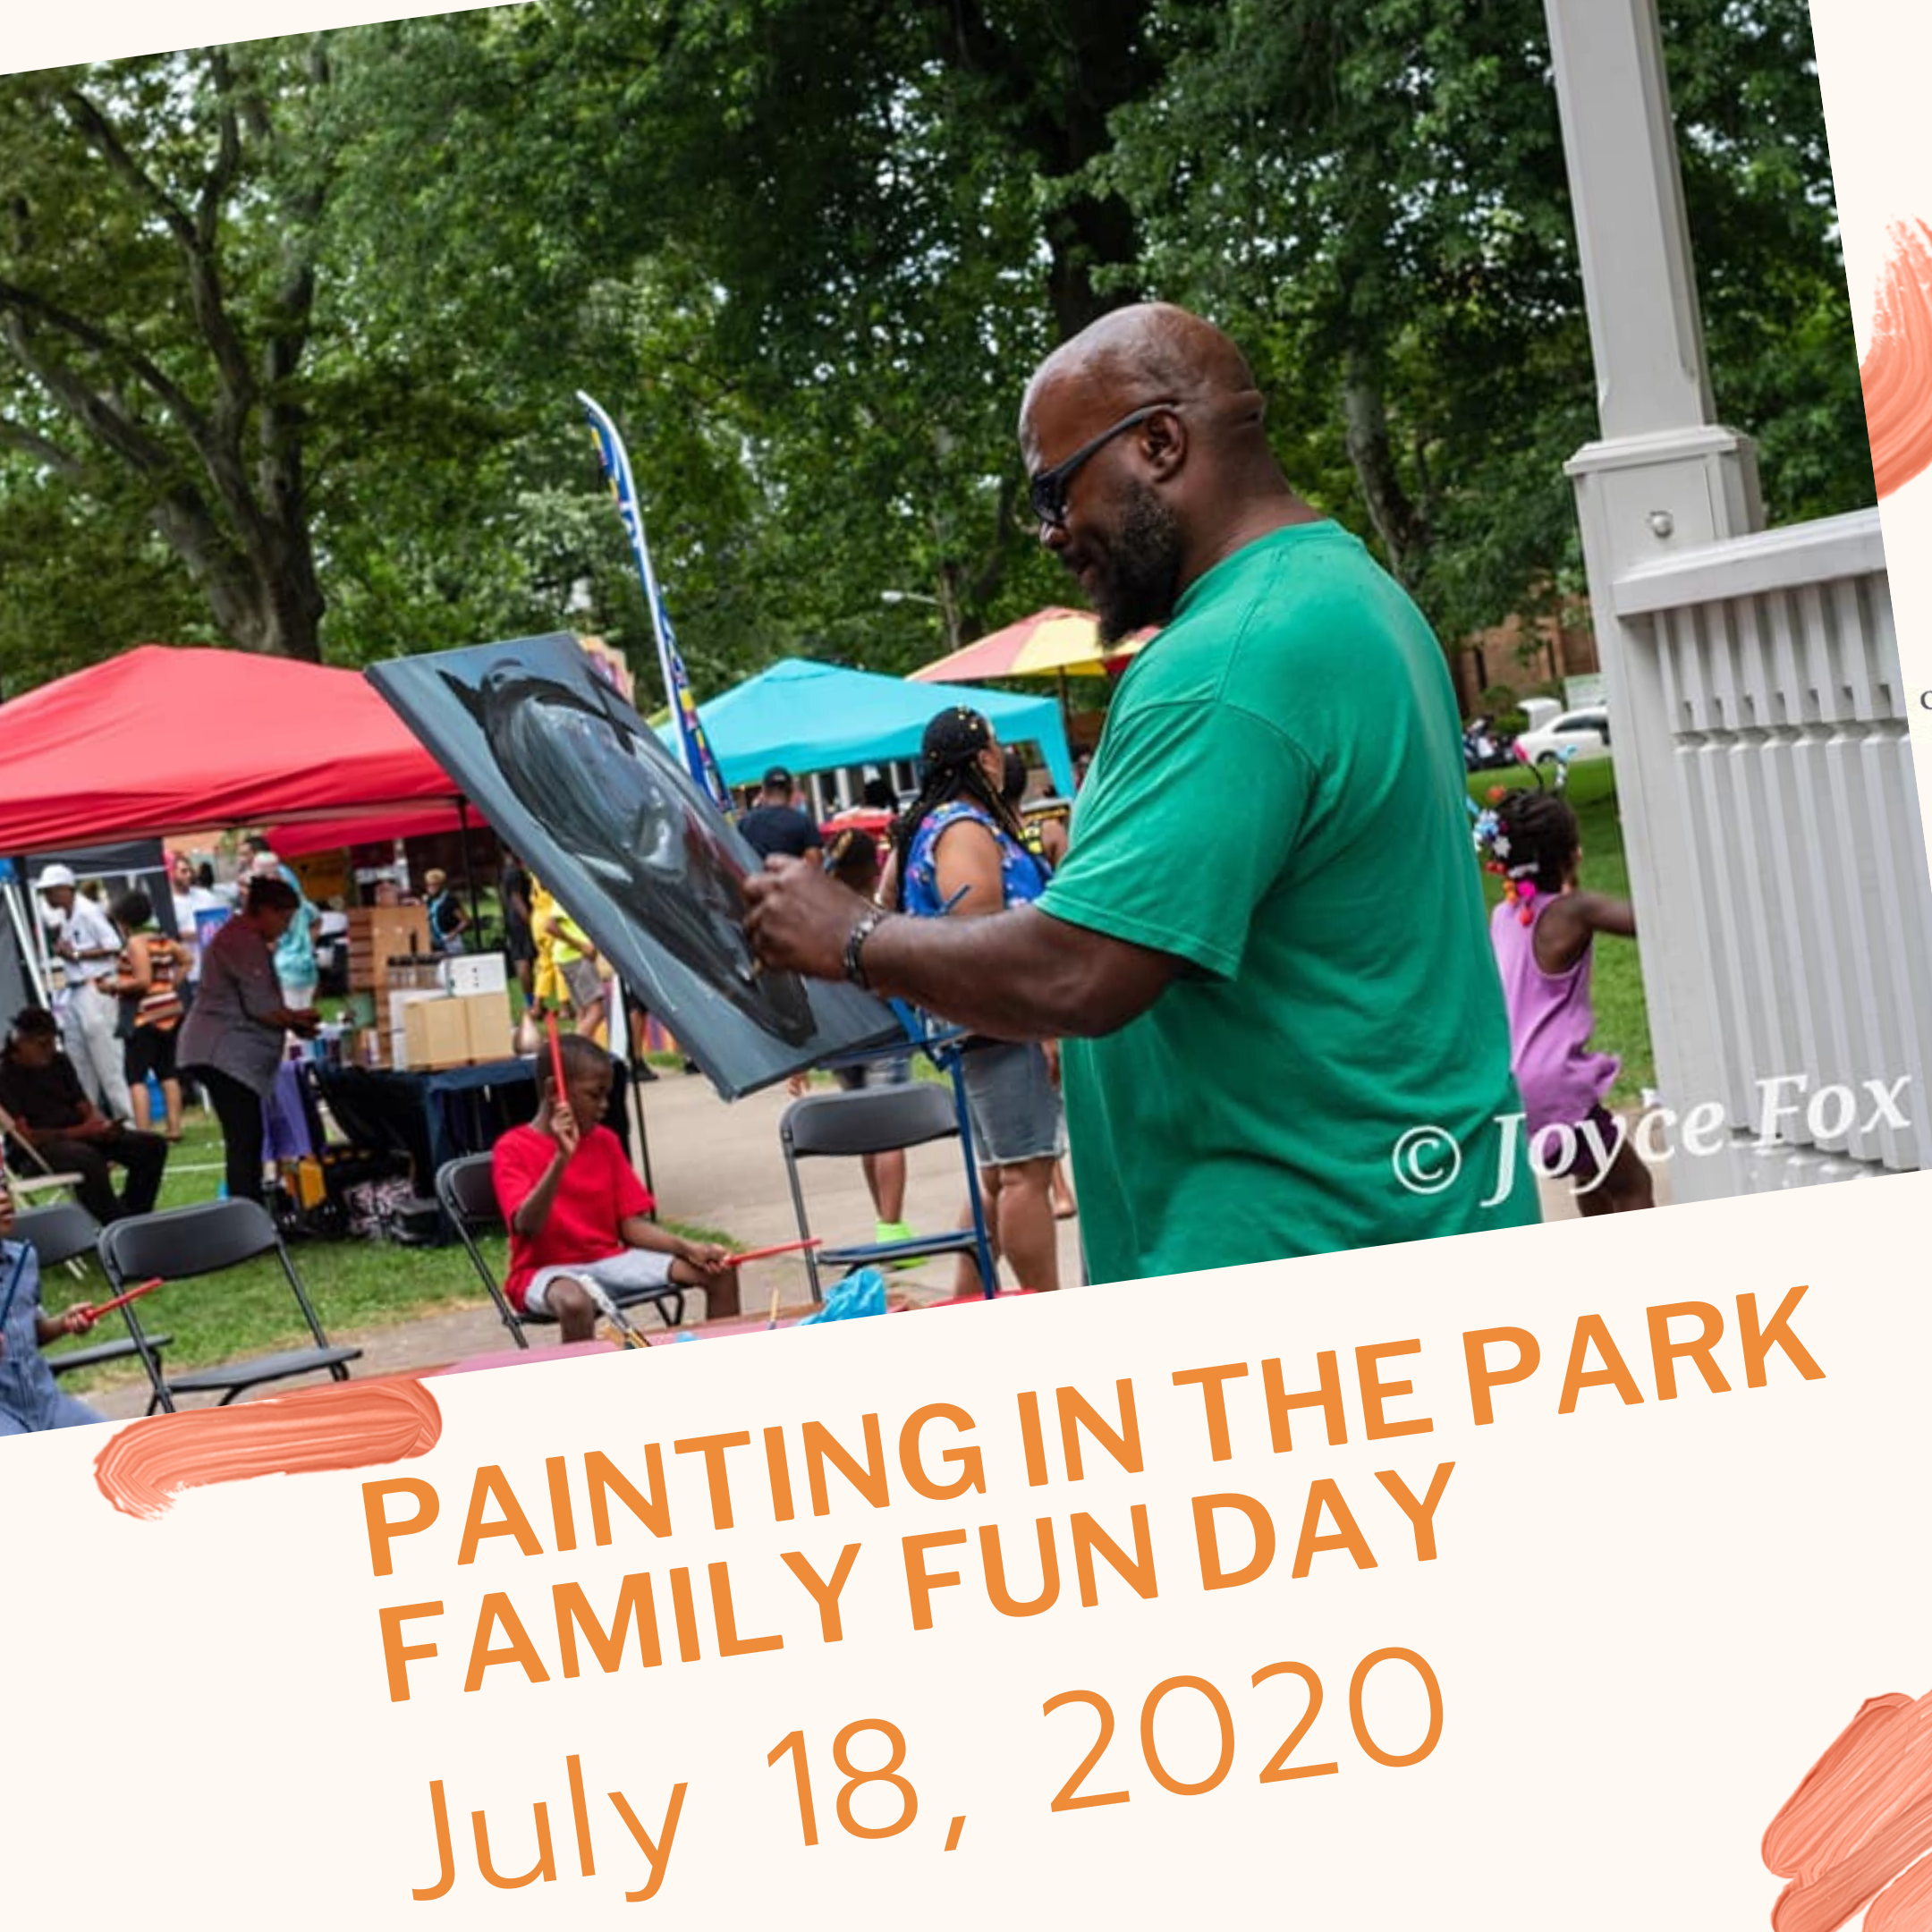 Christmas In July Cleveland 2020 6th Annual Painting in the Park Family Fun Day: Christmas in July